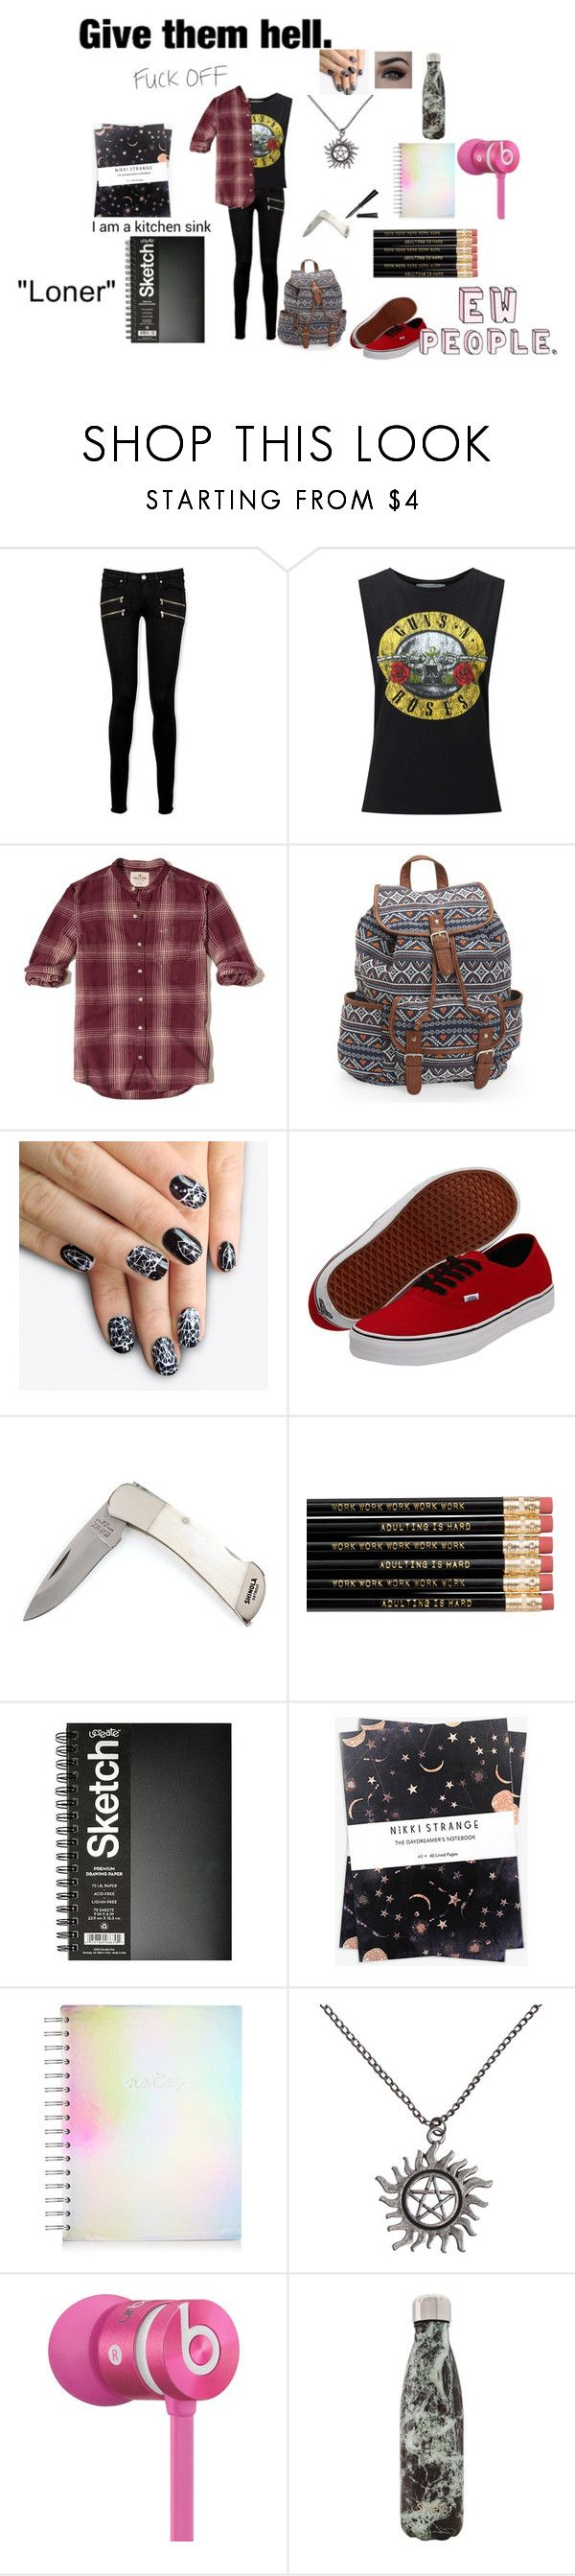 """""""~Can you hear the silence?~"""" by donttrusttylerjoesph ❤ liked on Polyvore featuring Paige Denim, Miss Selfridge, Hollister Co., Aéropostale, alfa.K, Vans, Nikki Strange, Hot Topic, Beats by Dr. Dre and West Elm"""